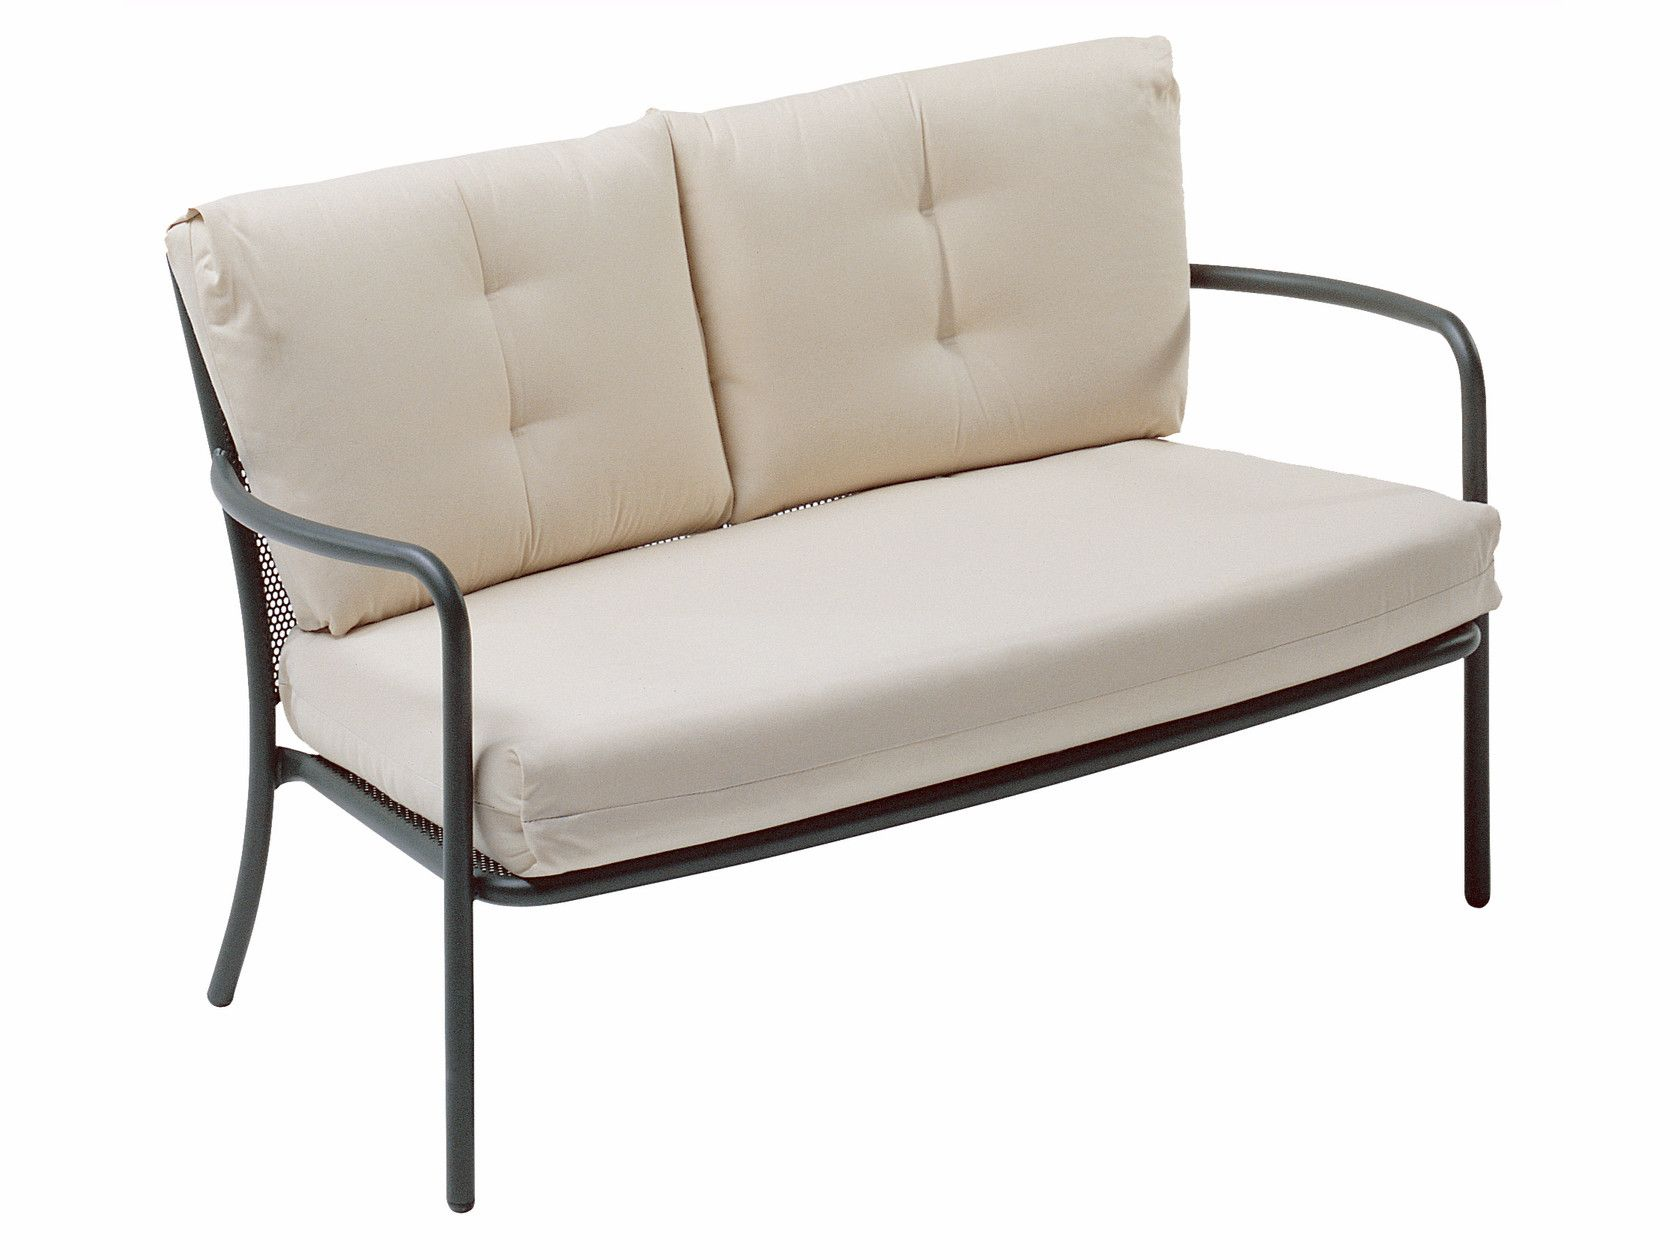 Athena 2 Seater Sofa Athena Line By Emu Sofa Set Designs Steel Sofa Seater Sofa